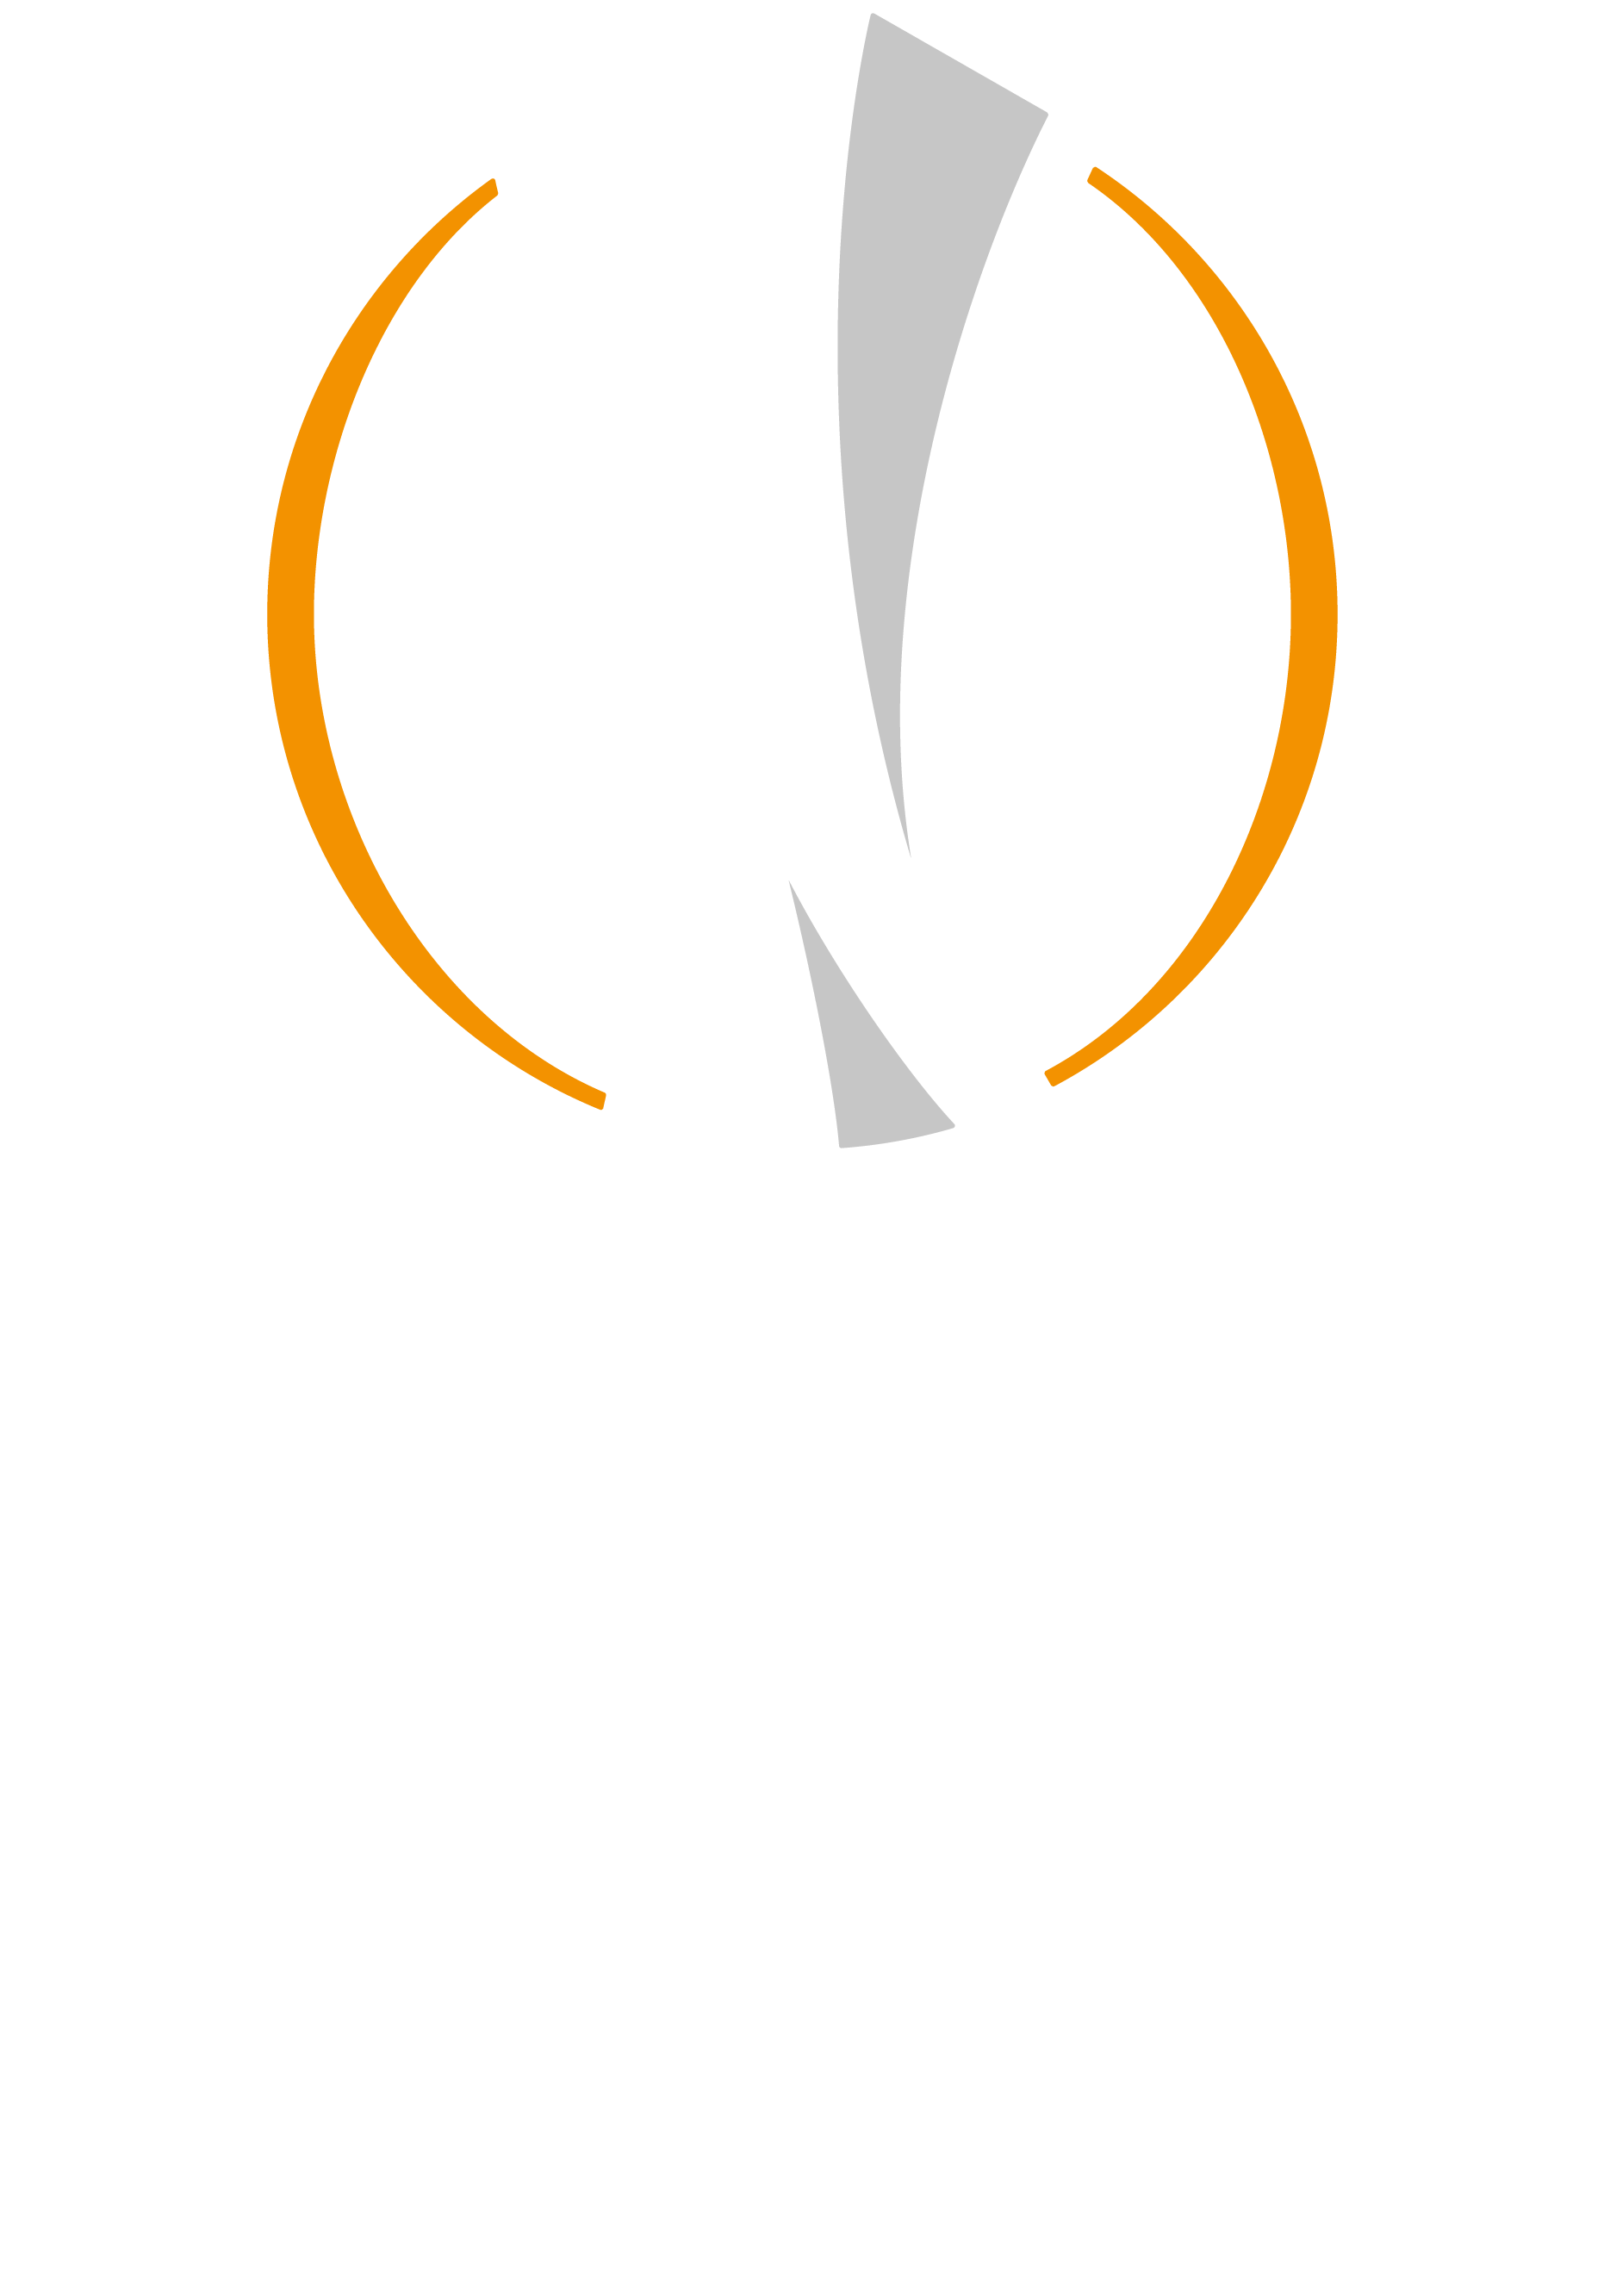 uefa champions league trophy png europa league transparent 2001122 vippng uefa champions league trophy png